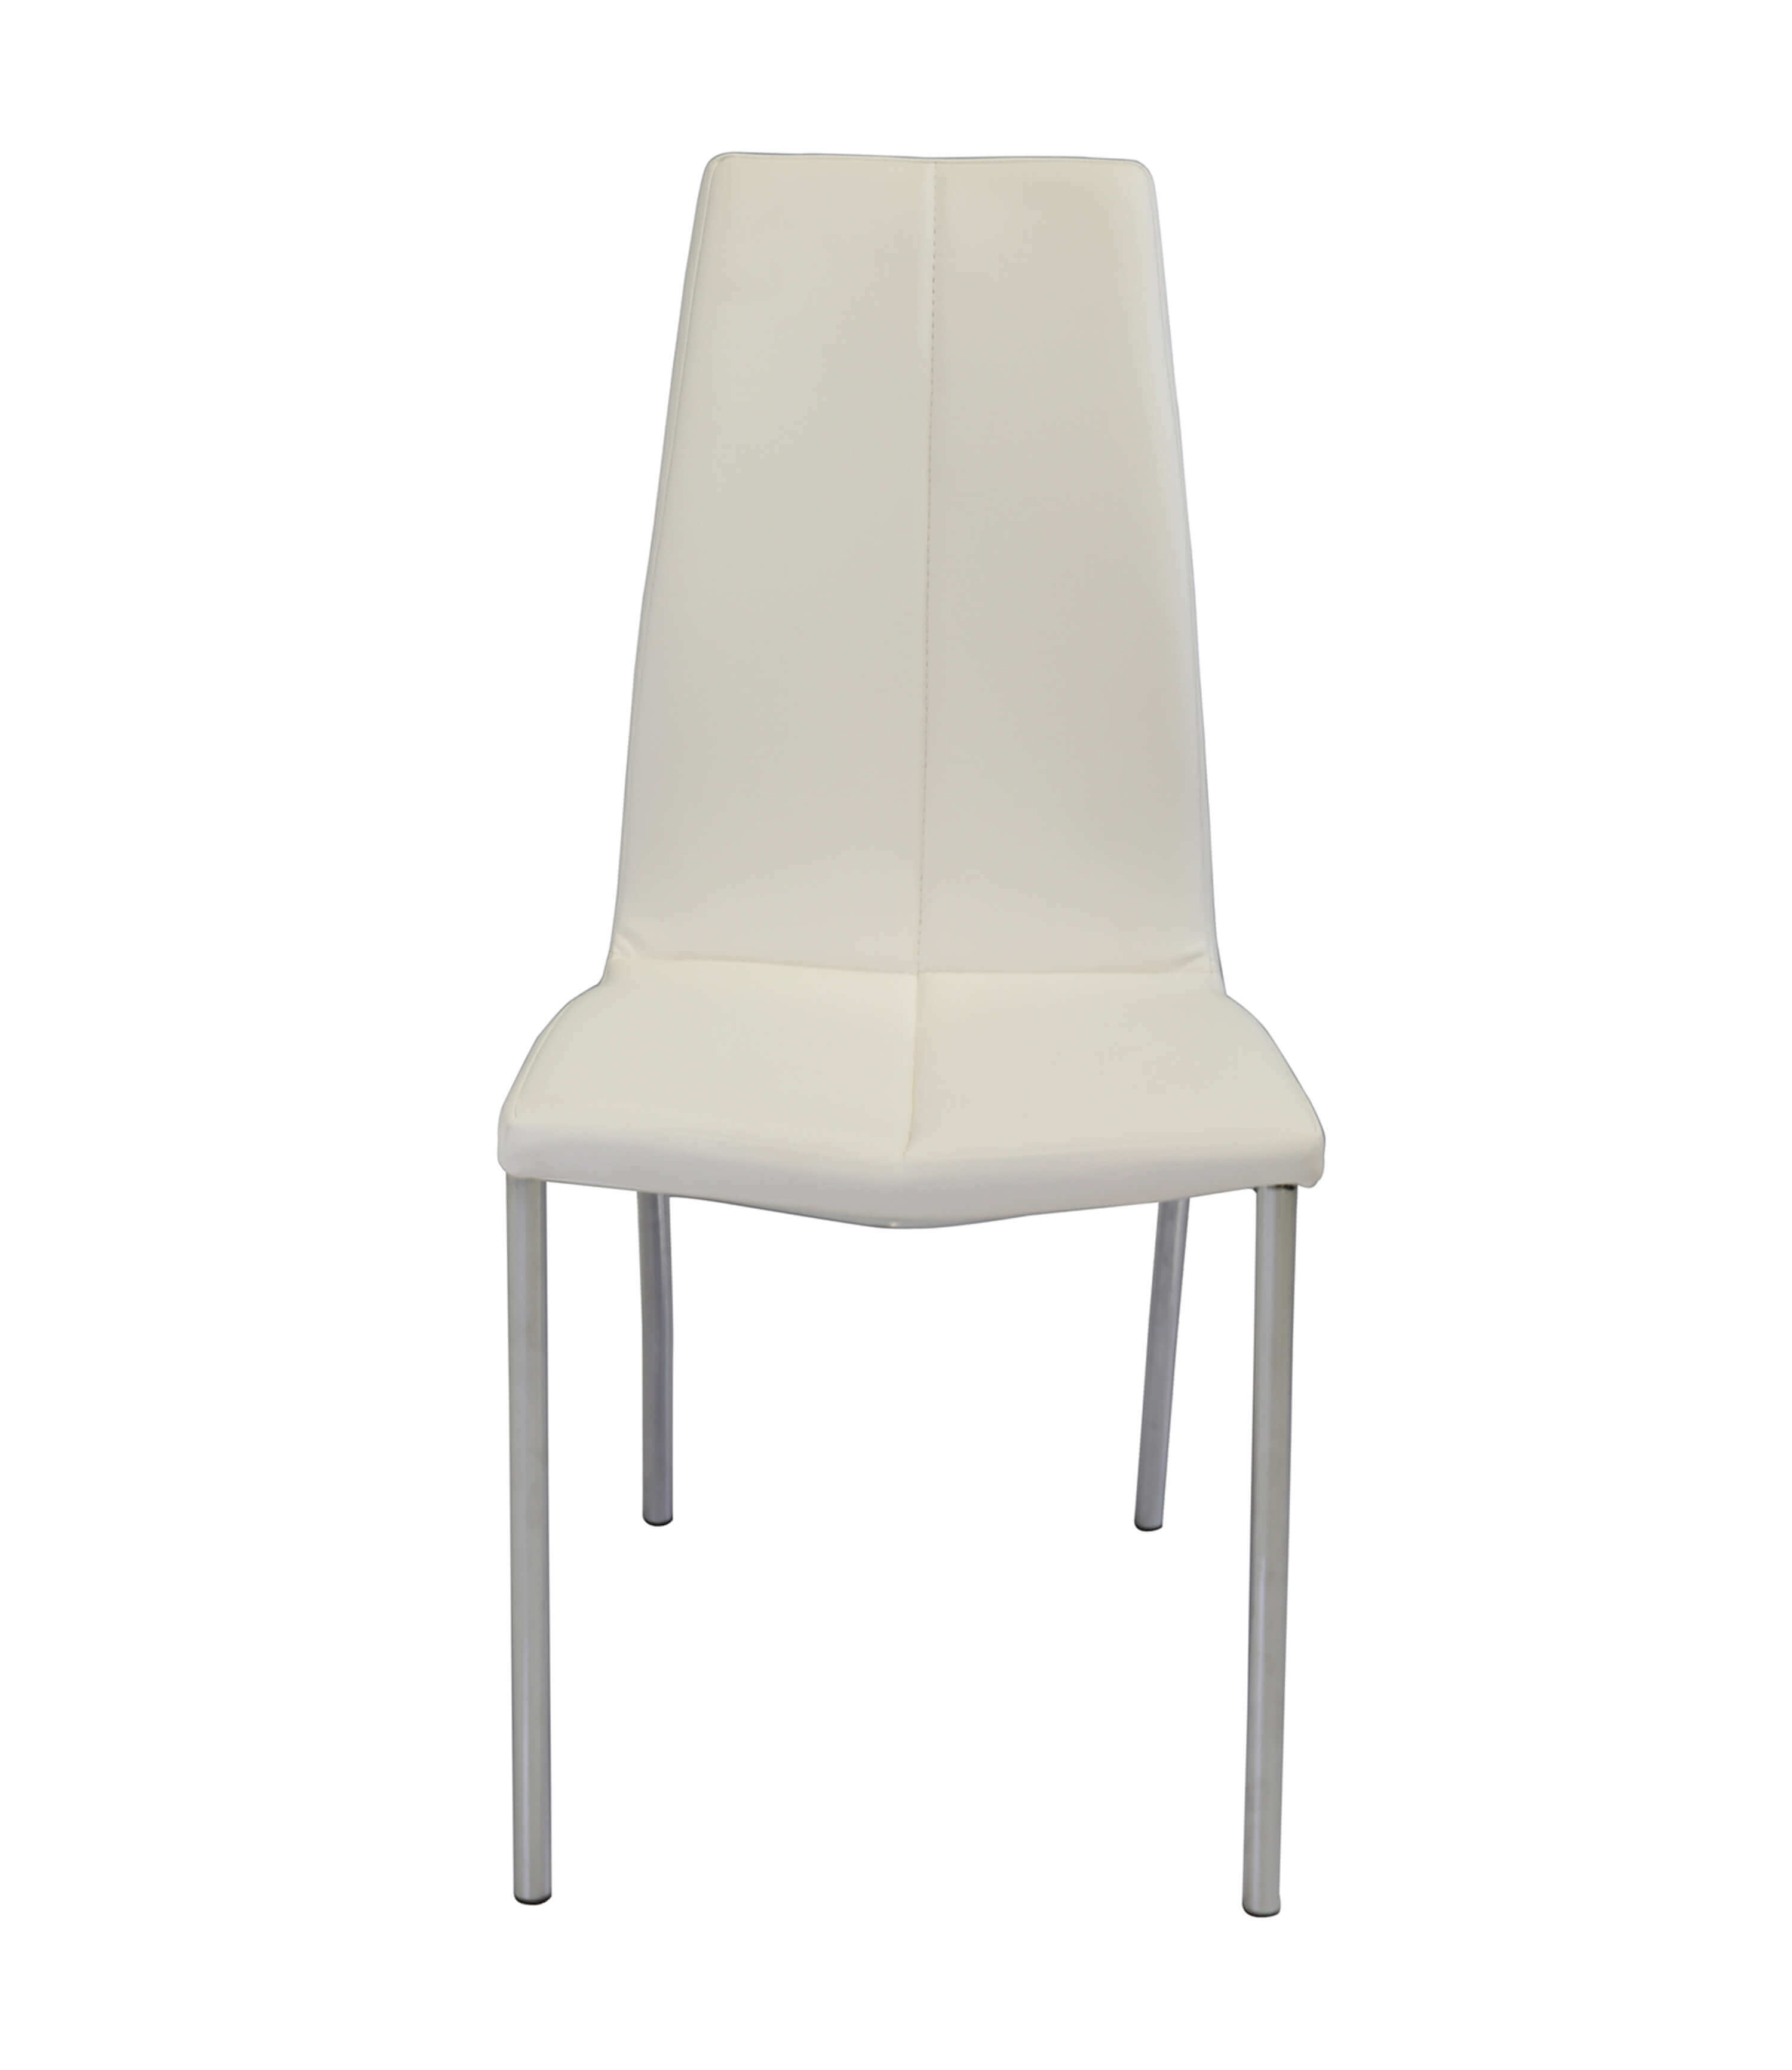 Boston white leather dining chair manchester furniture for Modern white leather dining chairs